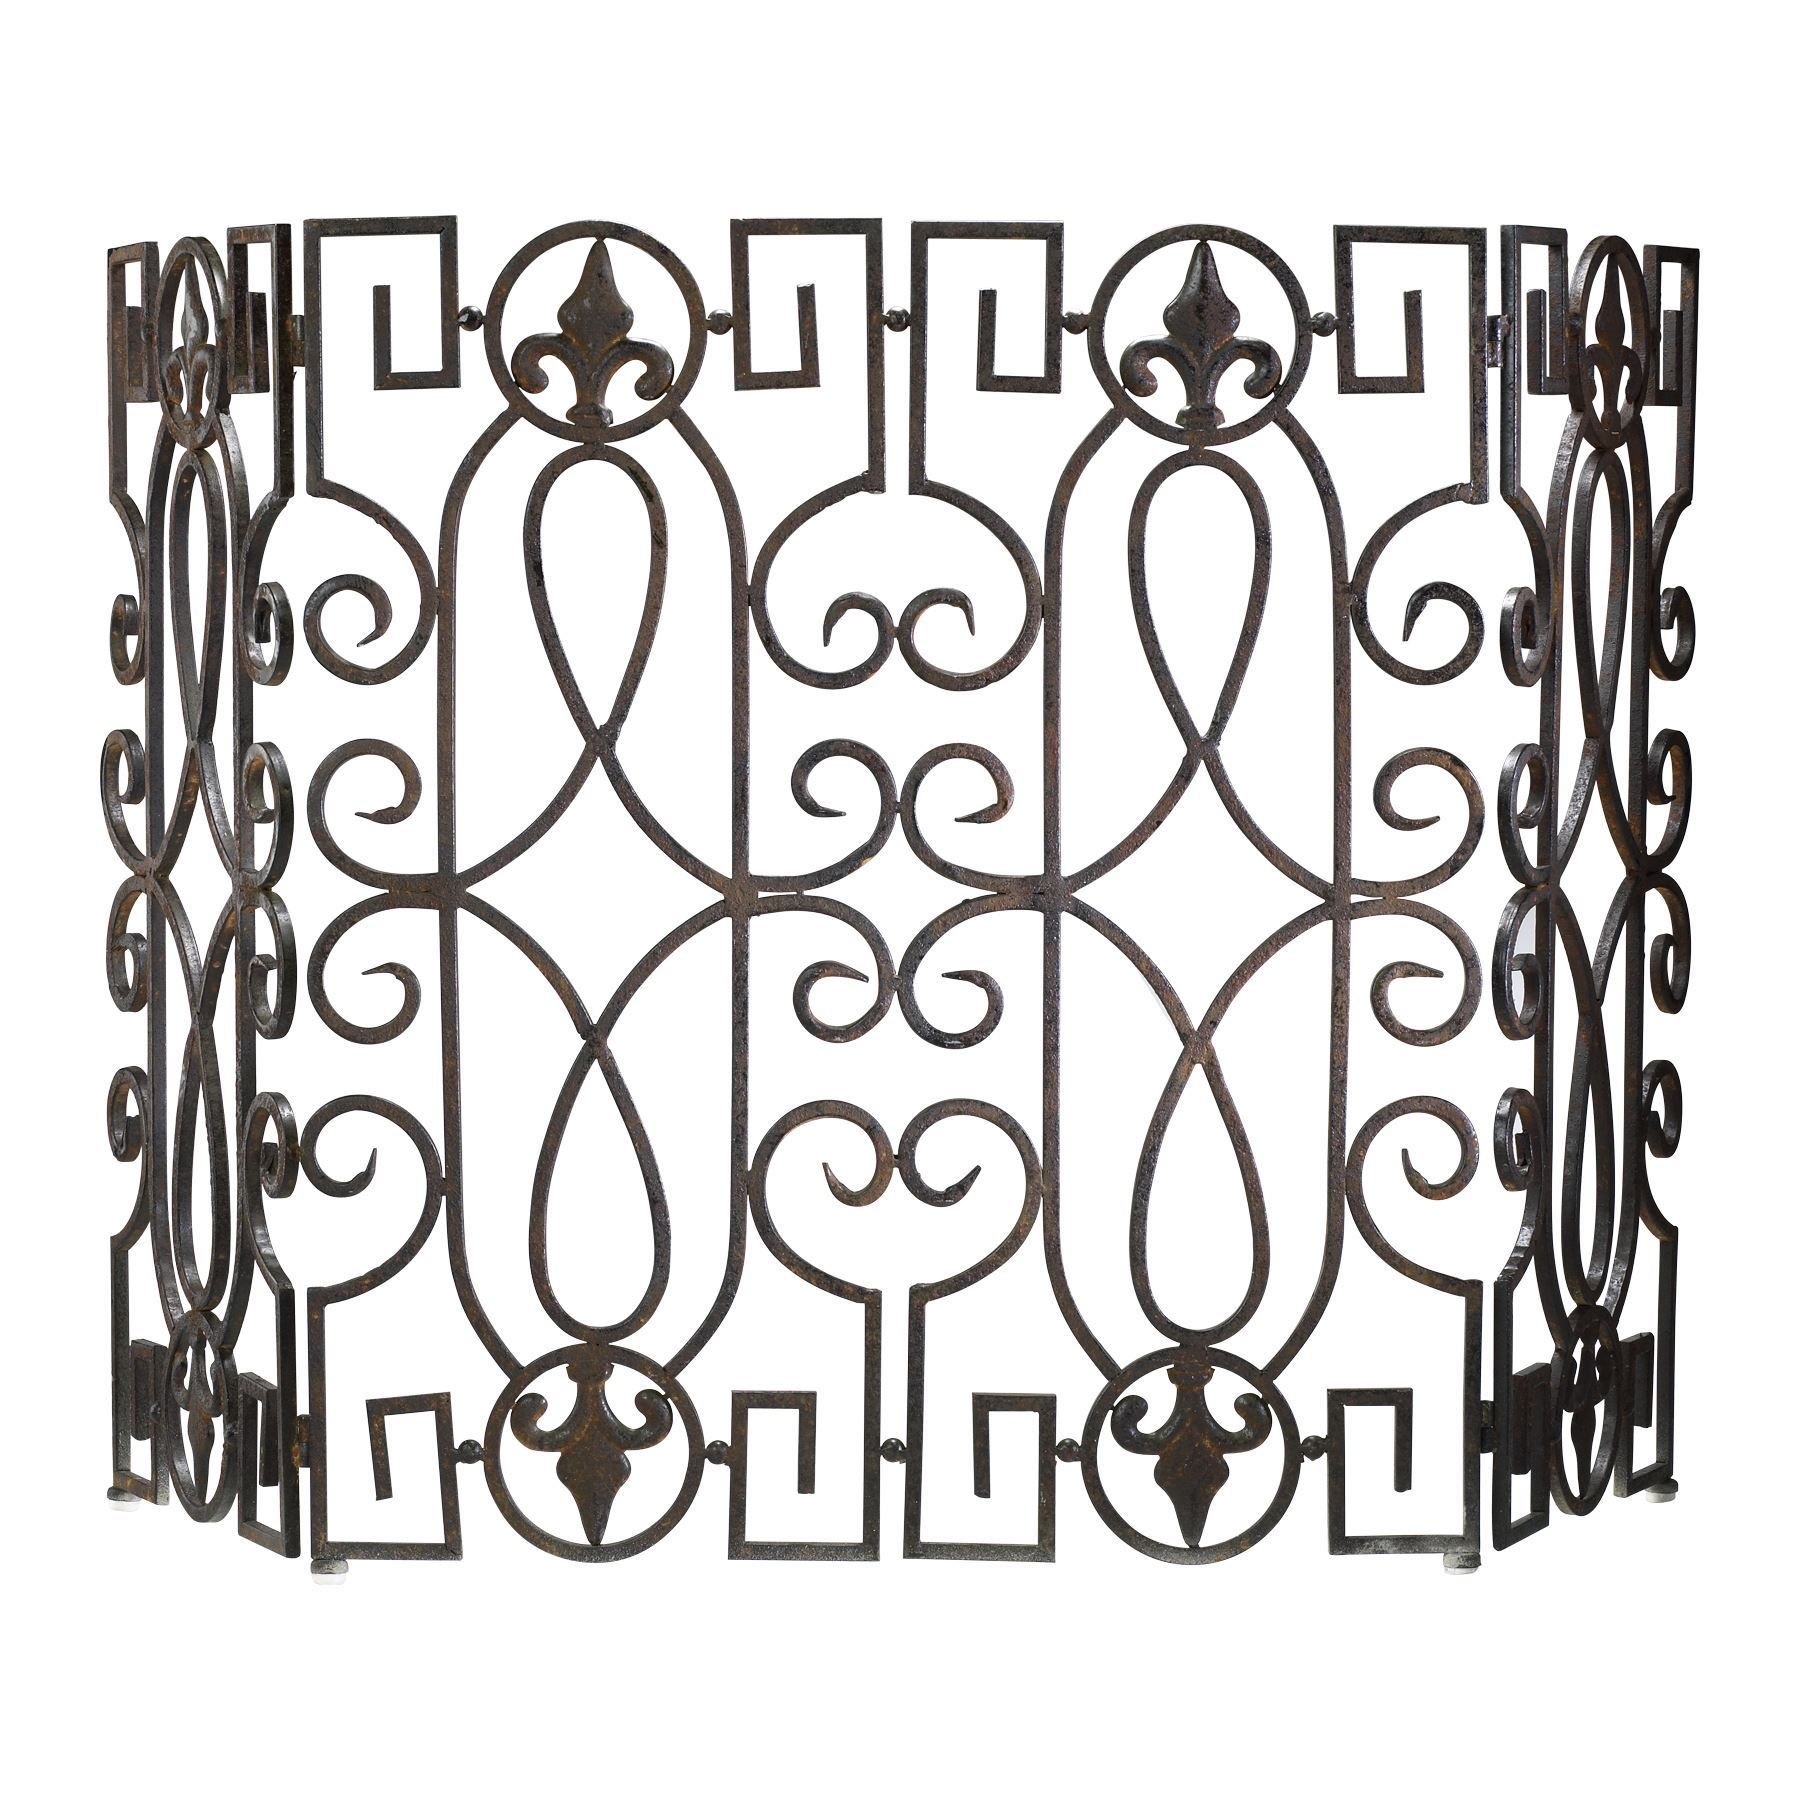 Wrought Iron Mediterranean Fireplace Screen By Cyan Design Decorative Fireplace Screens Wrought Iron Fireplace Screen Fireplace Accessories